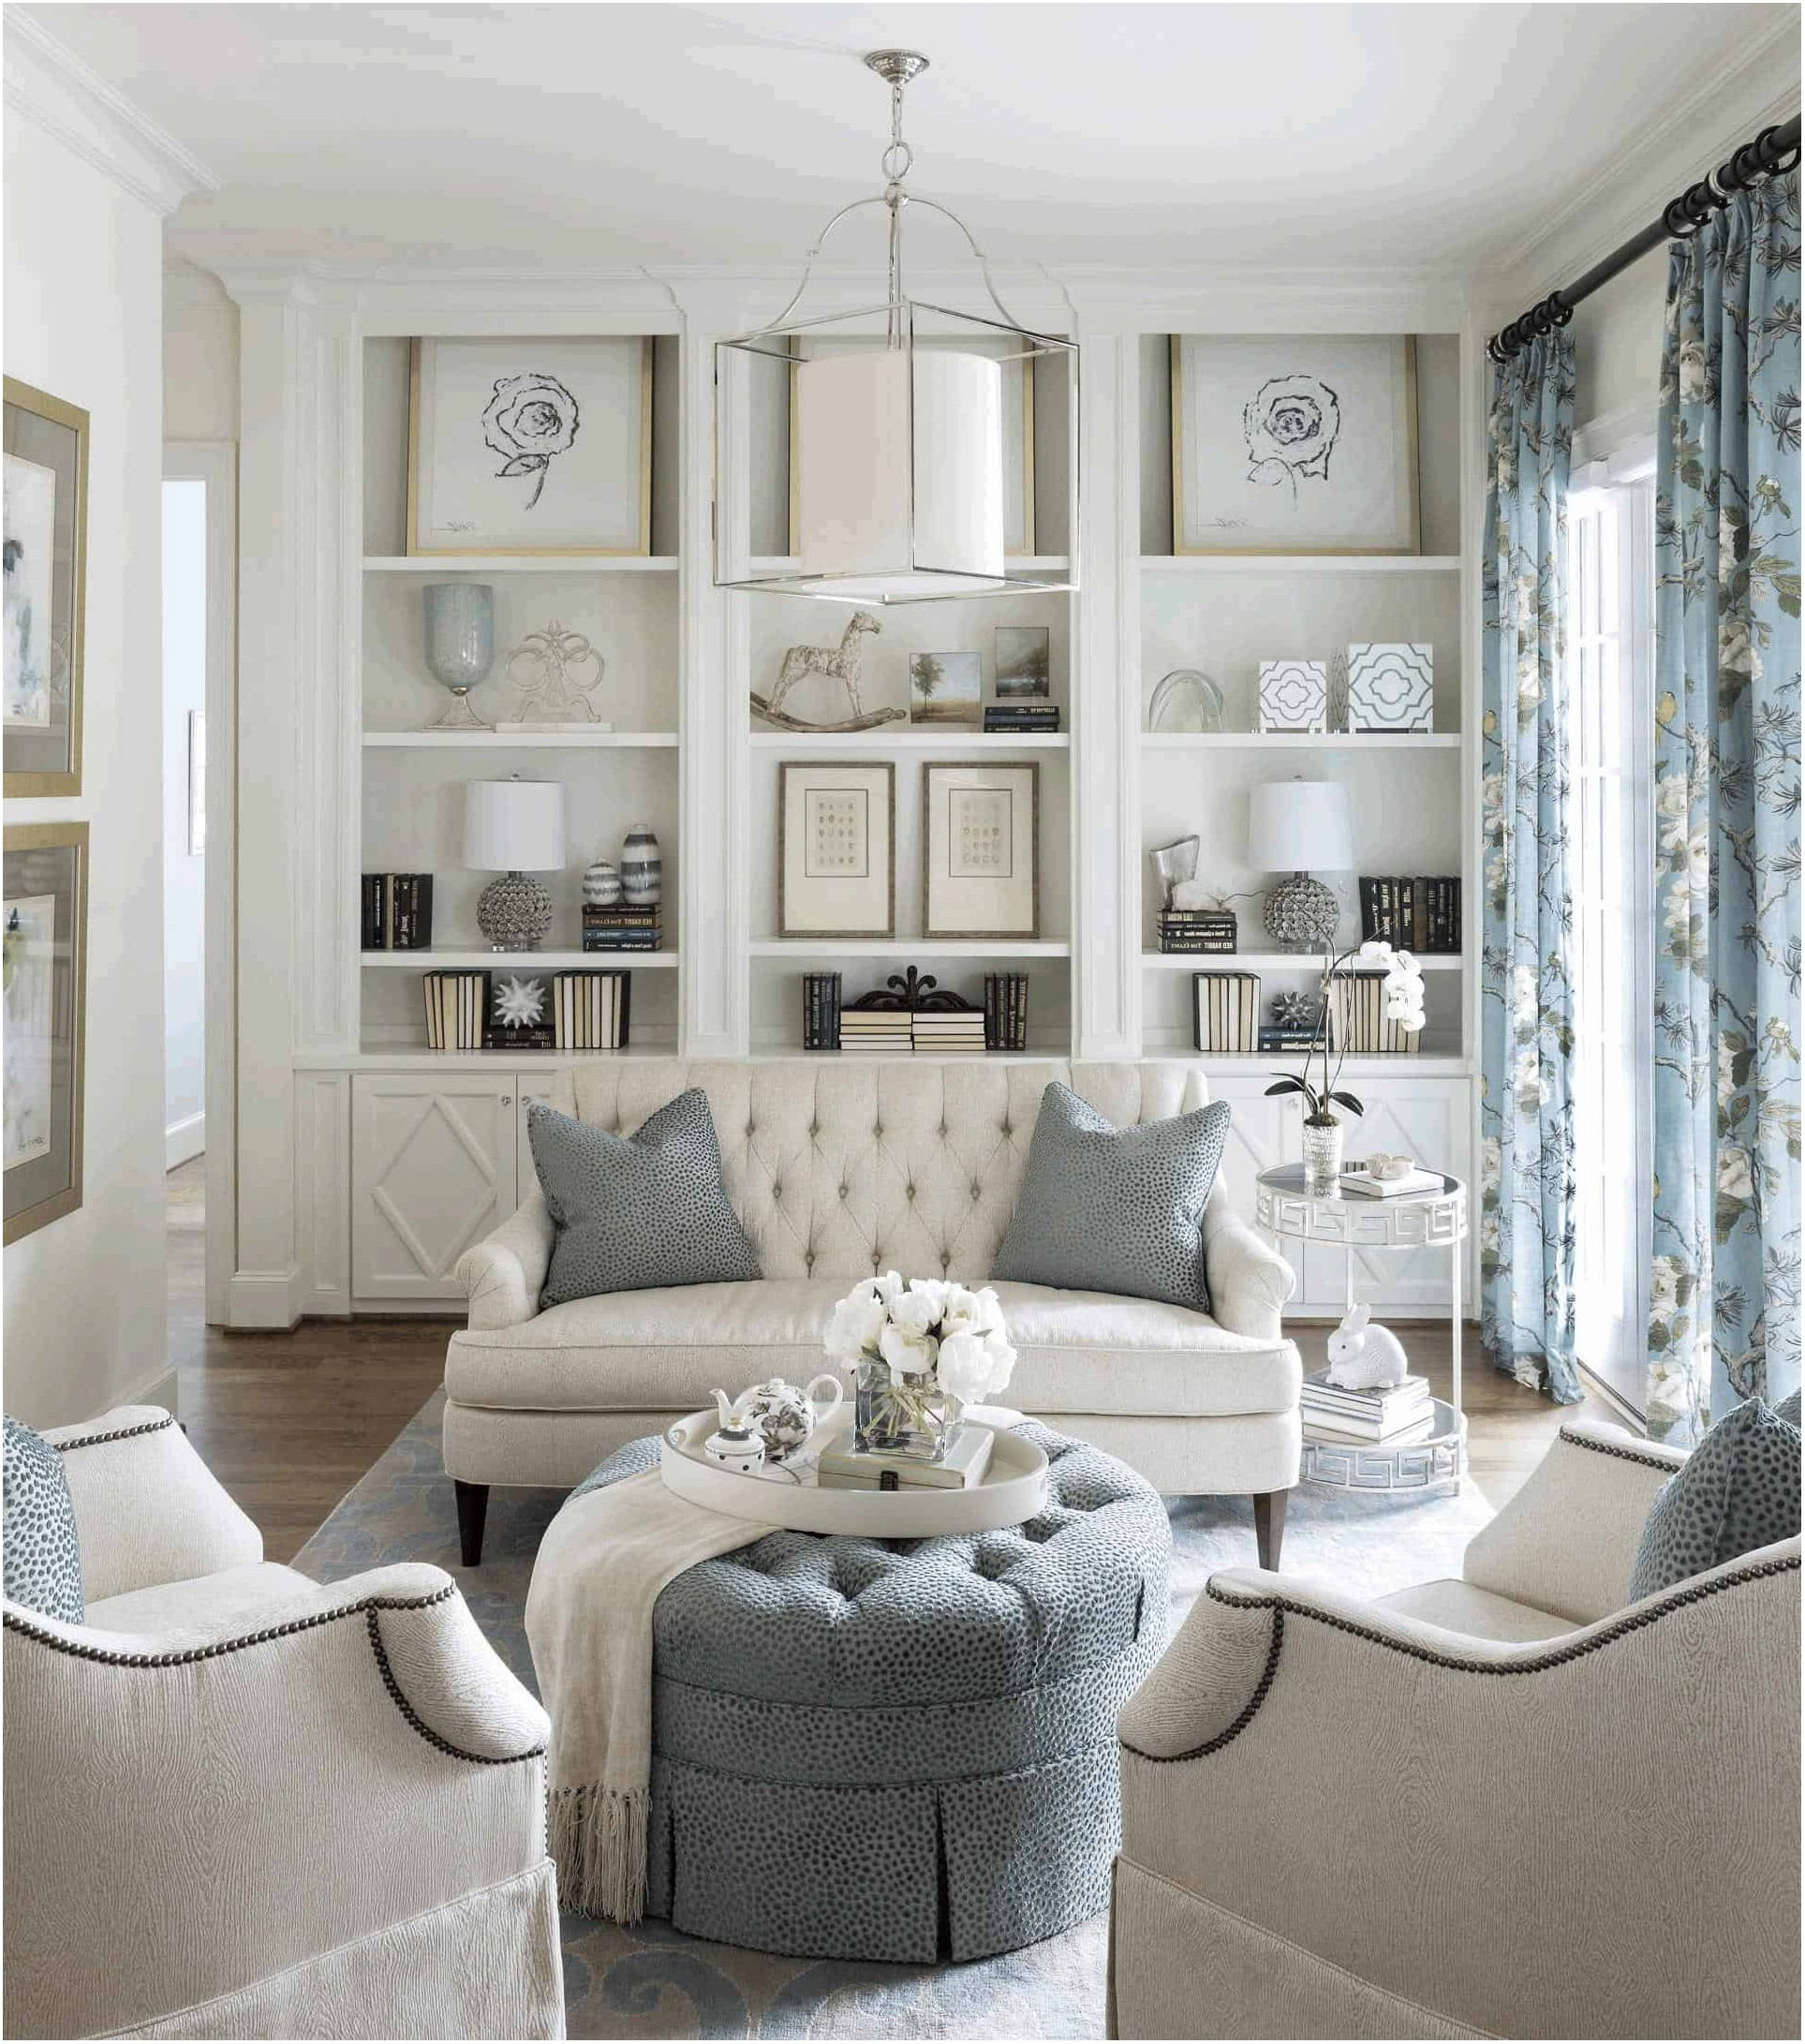 Interior Design Living Room With White Furniture